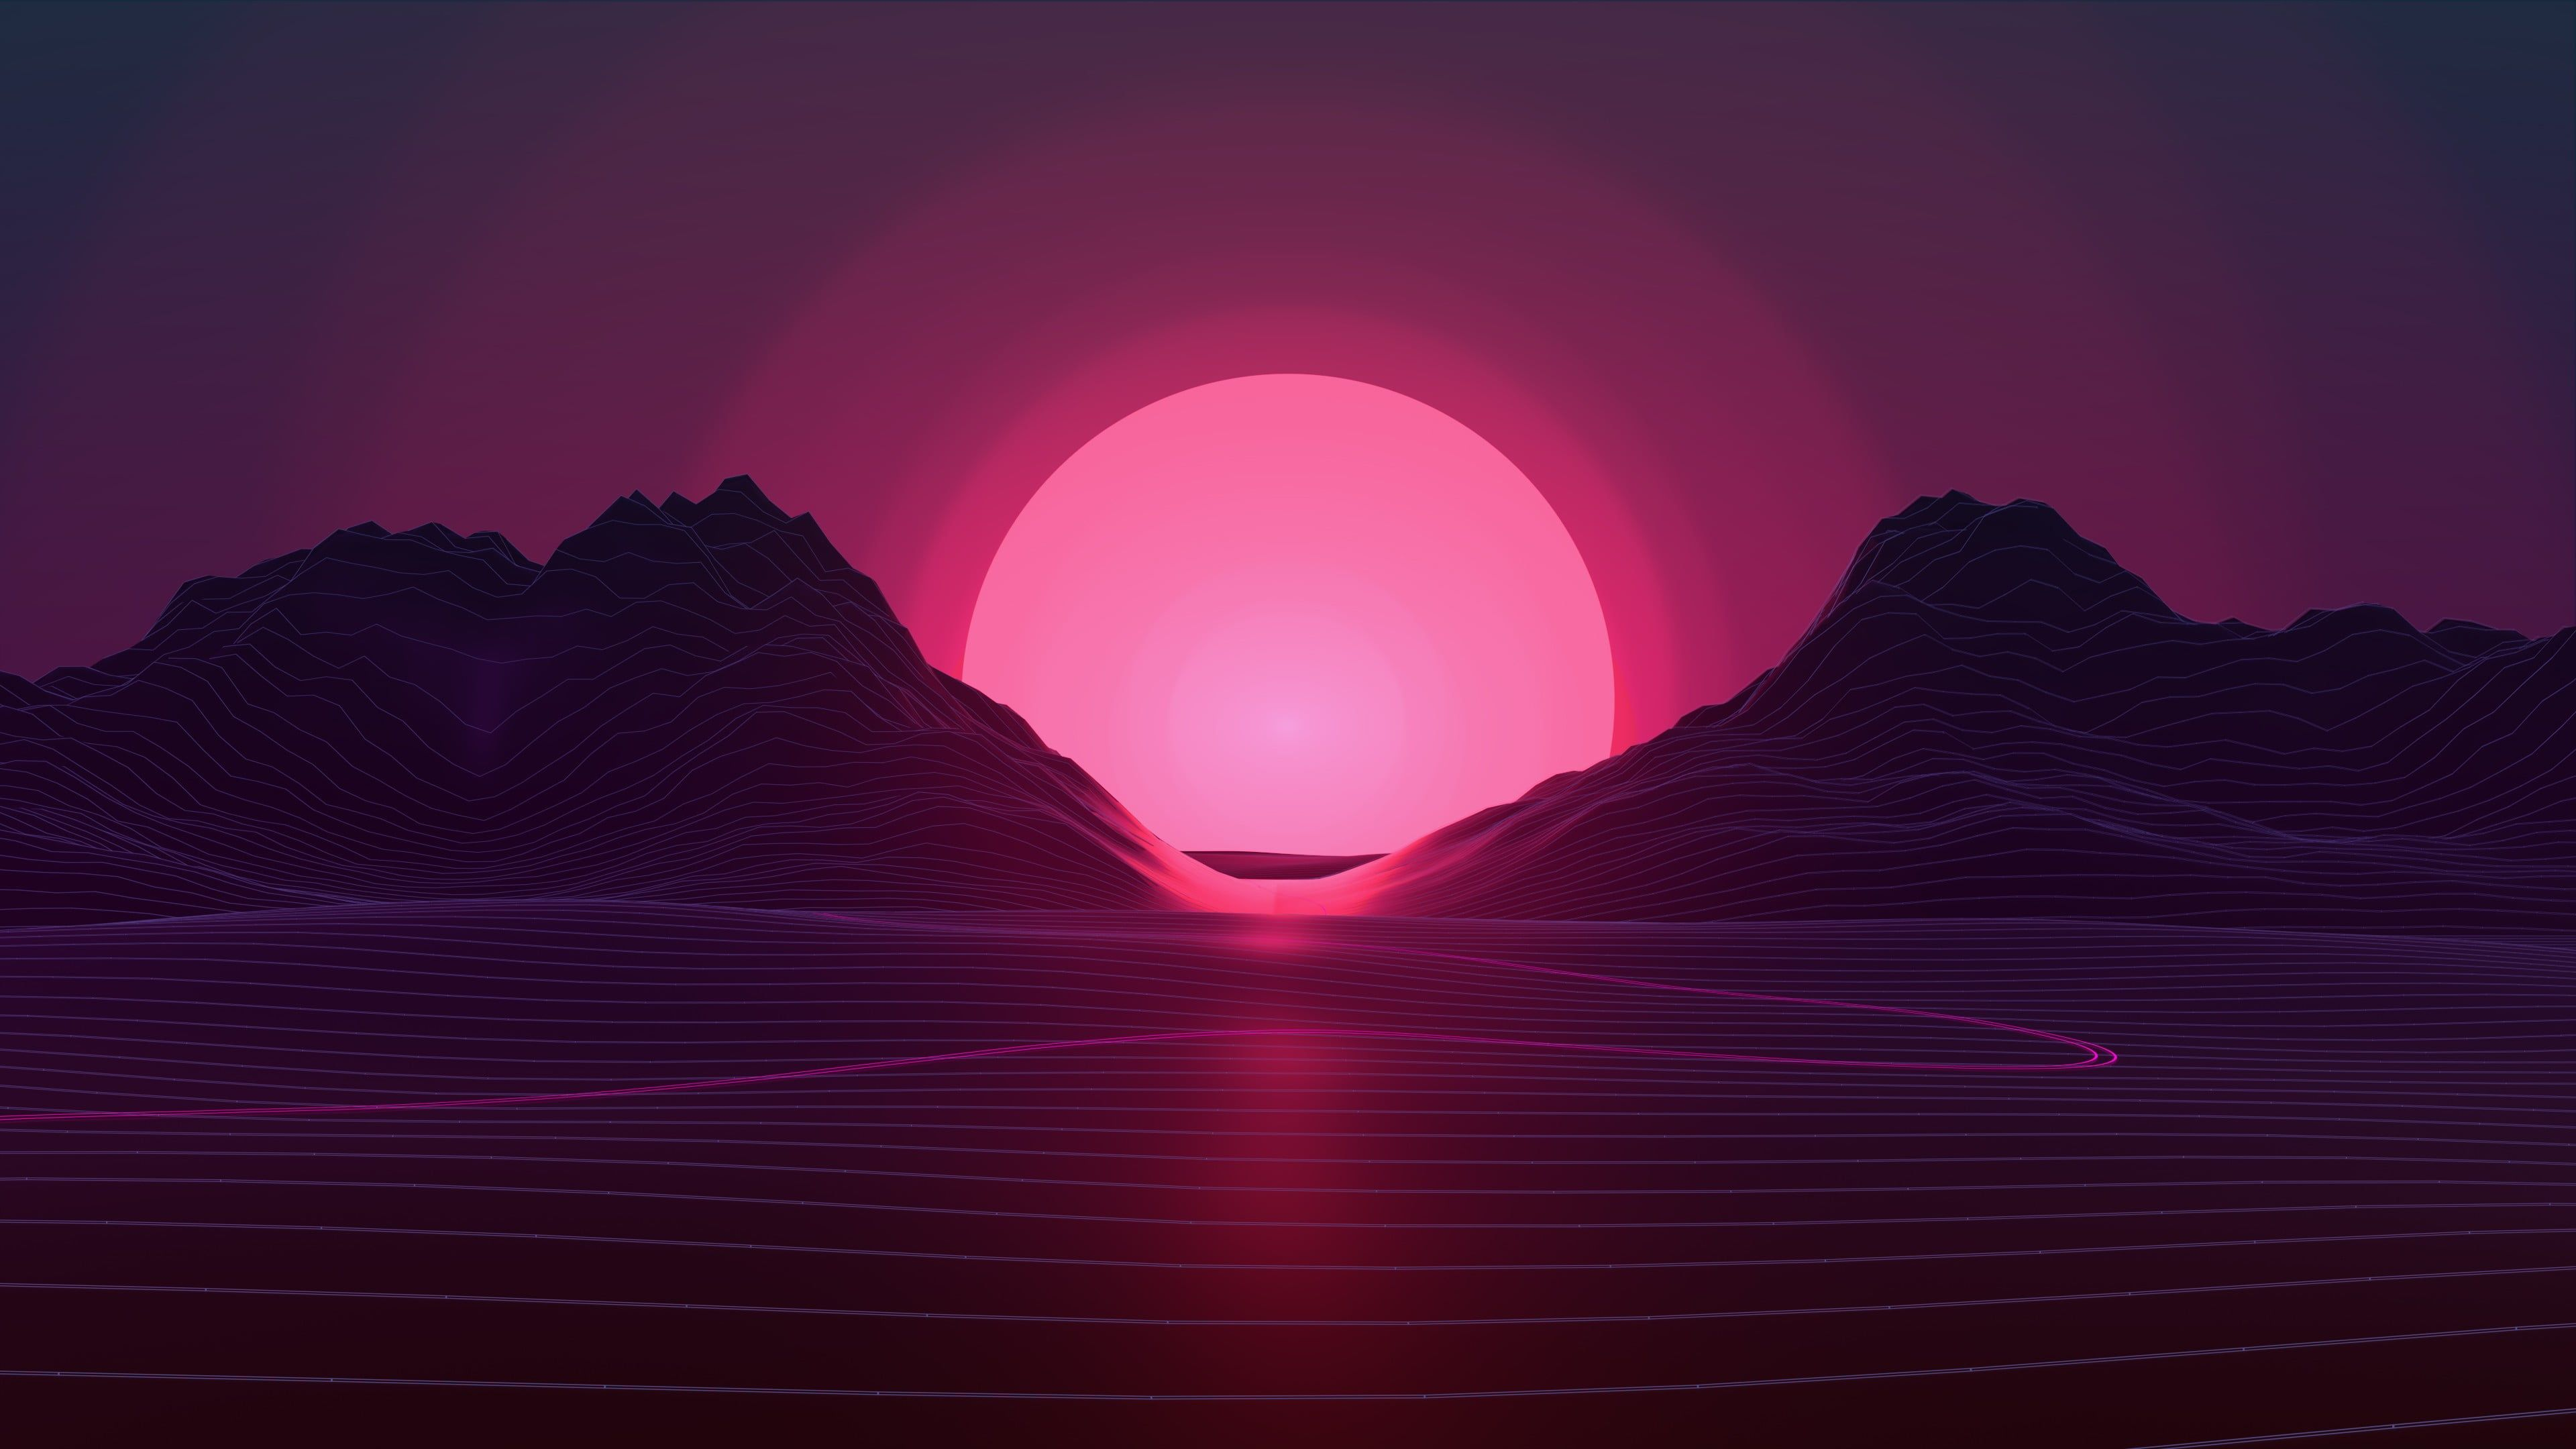 Mountain And Sun Wallpaper Mountain With Background Of Sunrise Digital Wallpaper Neon Sunset Retro Style Vaporwave Wallpaper Sunset Wallpaper Neon Wallpaper